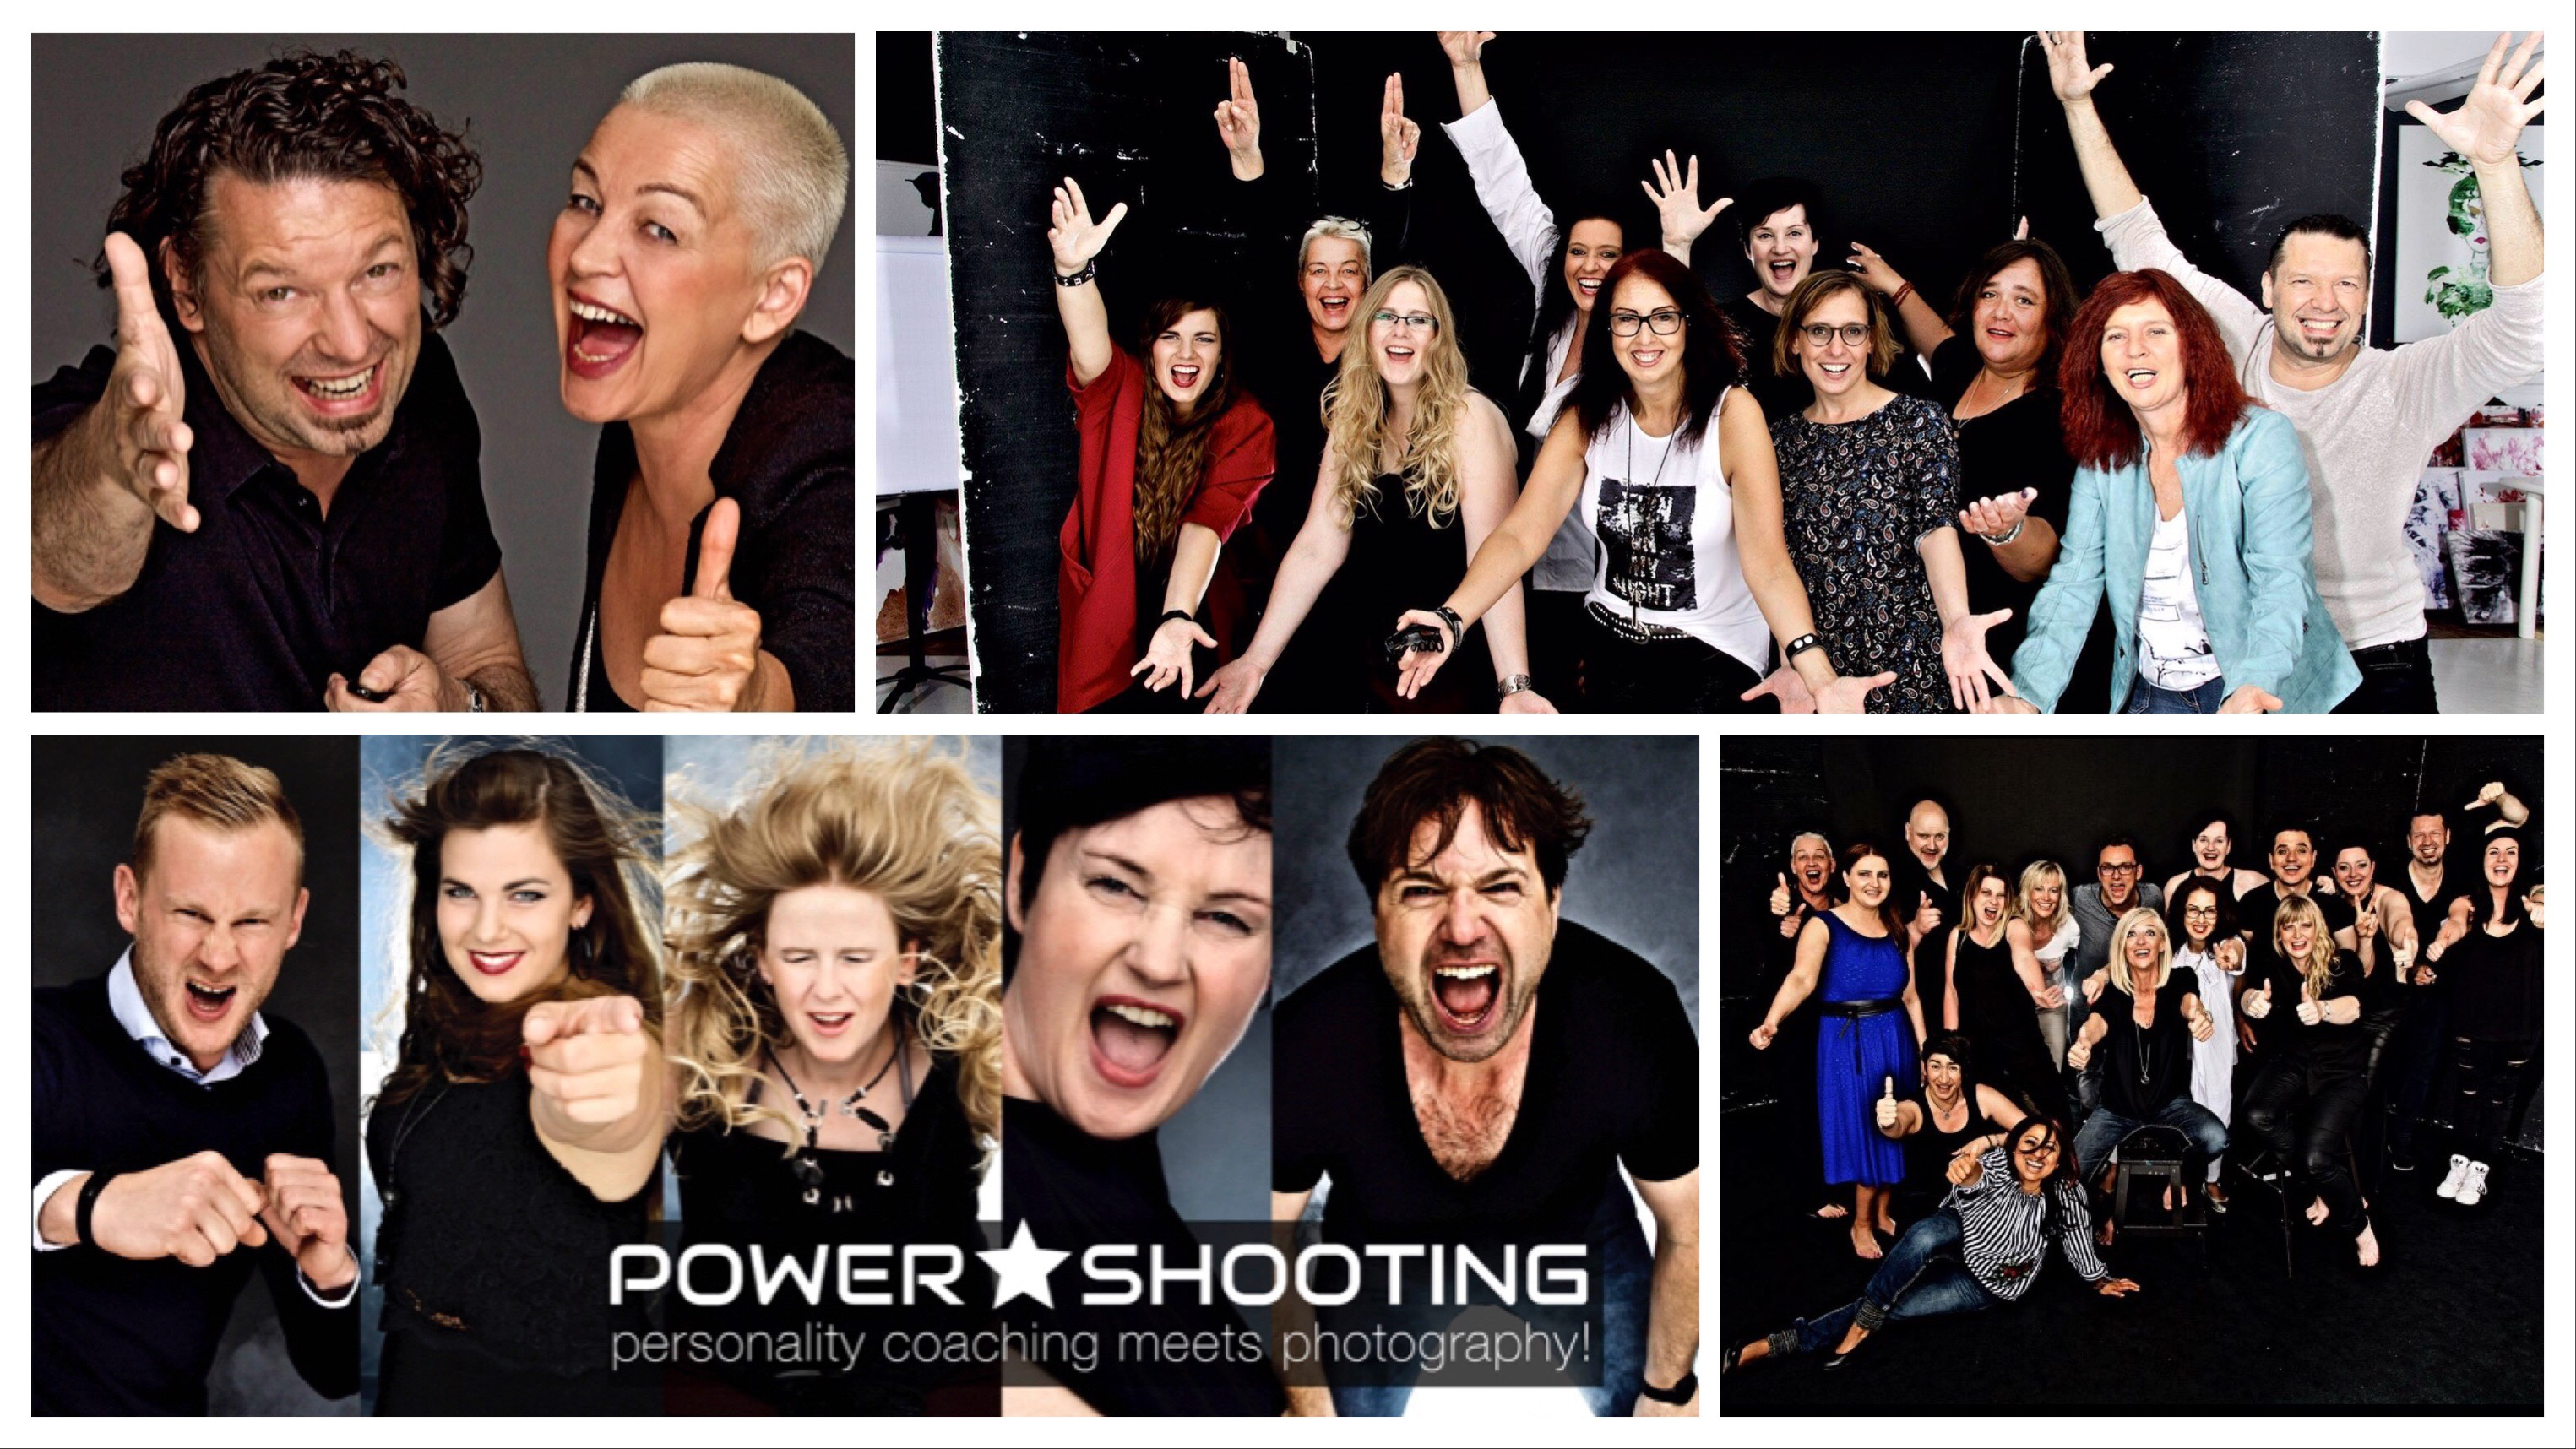 Powershooting - Das Teamevent zum Team Building | fotos @ jägerfotografen.de